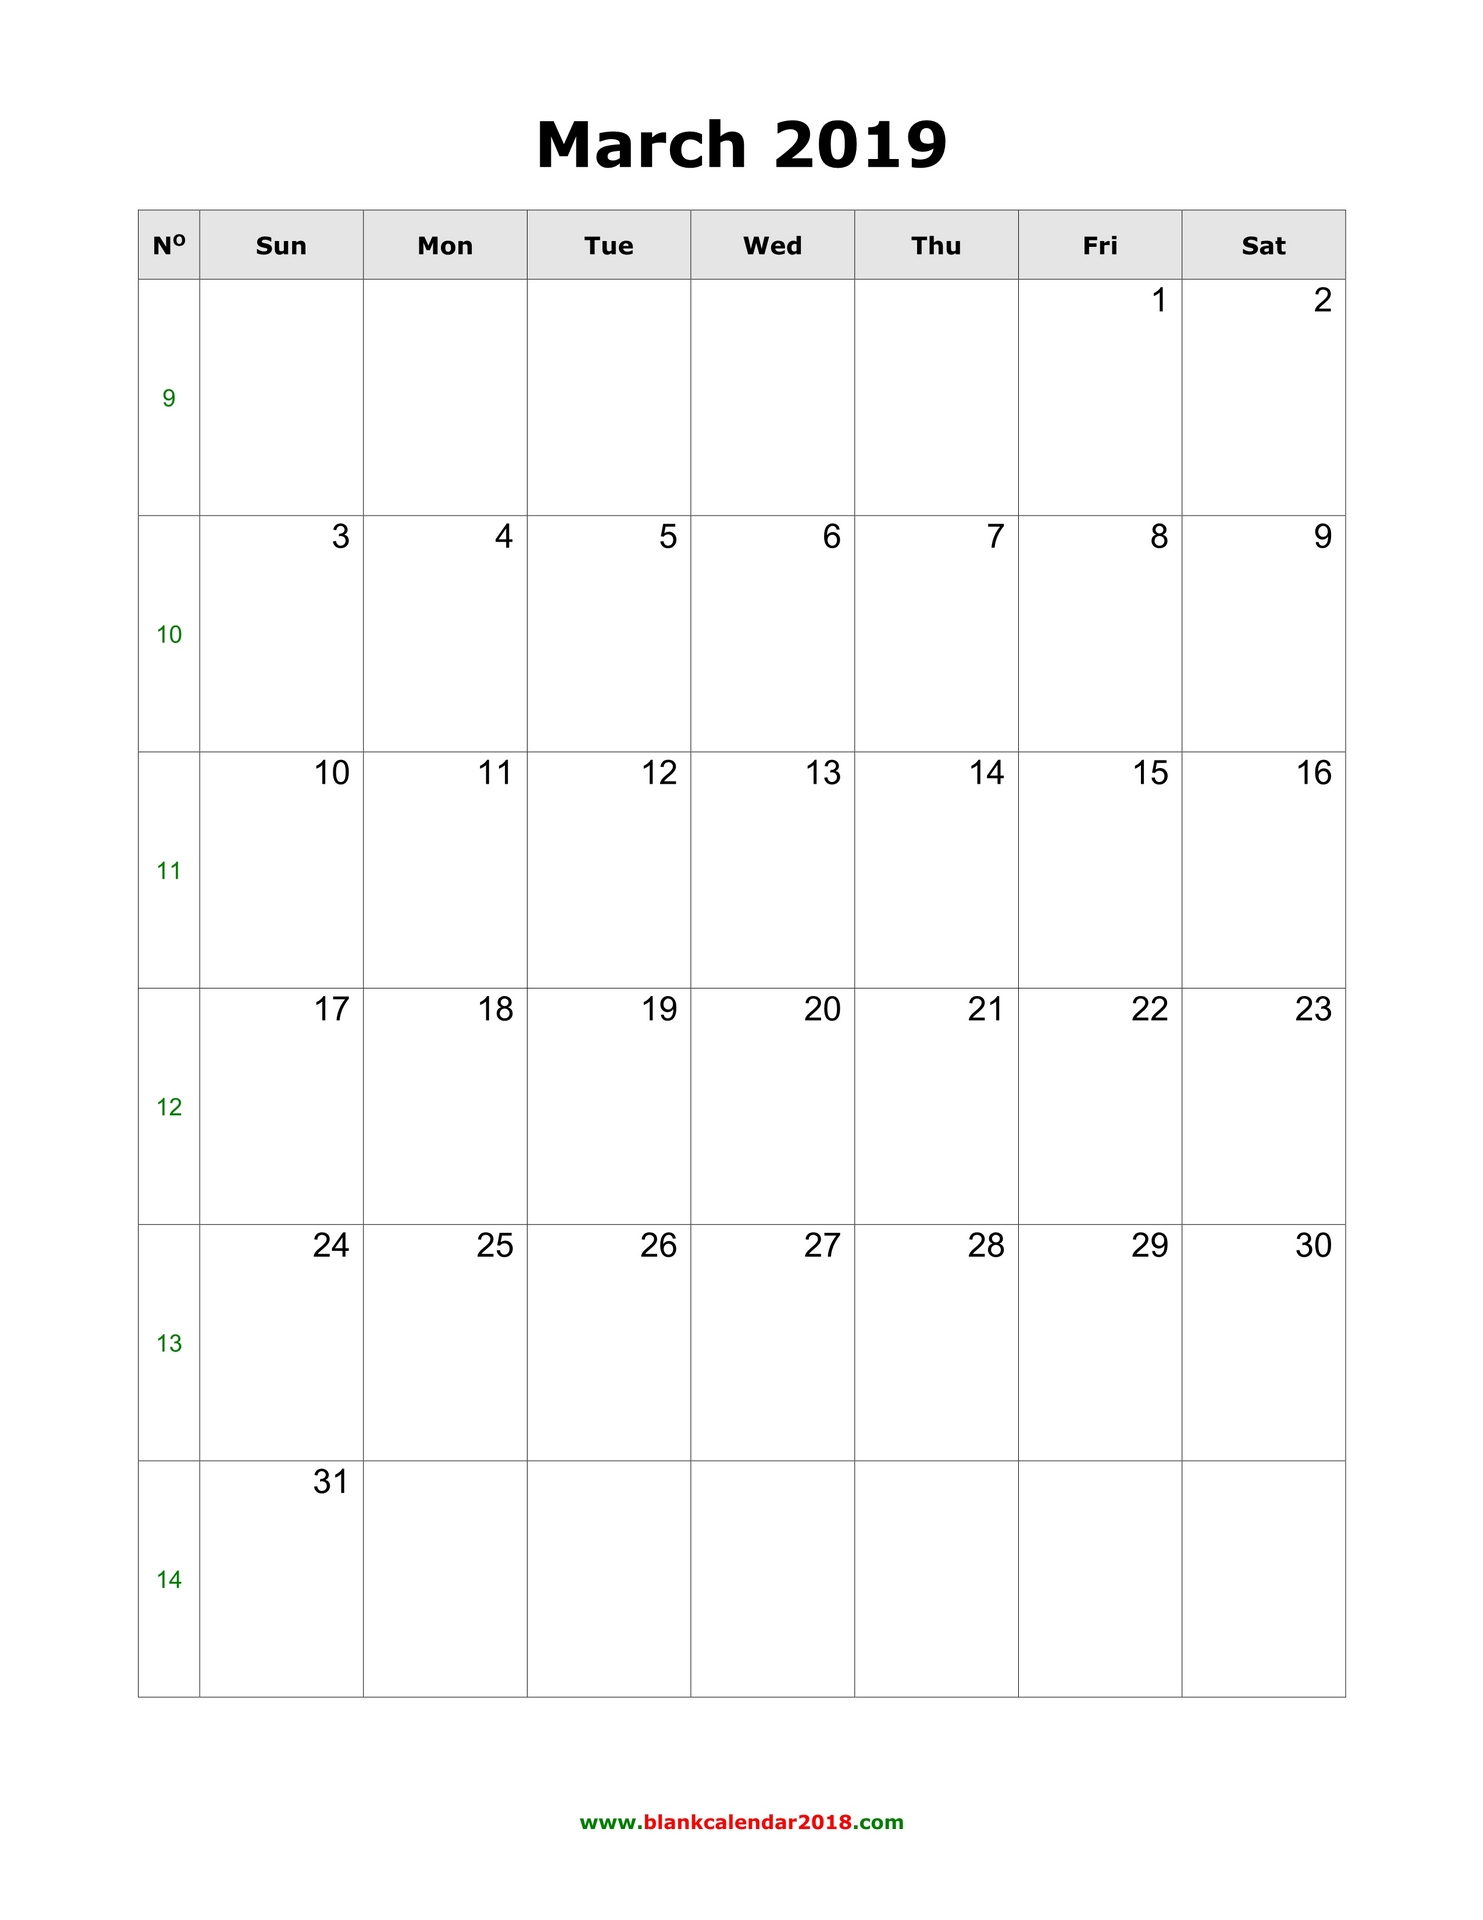 image relating to Free Printable March Calendar named Blank Calendar for March 2019